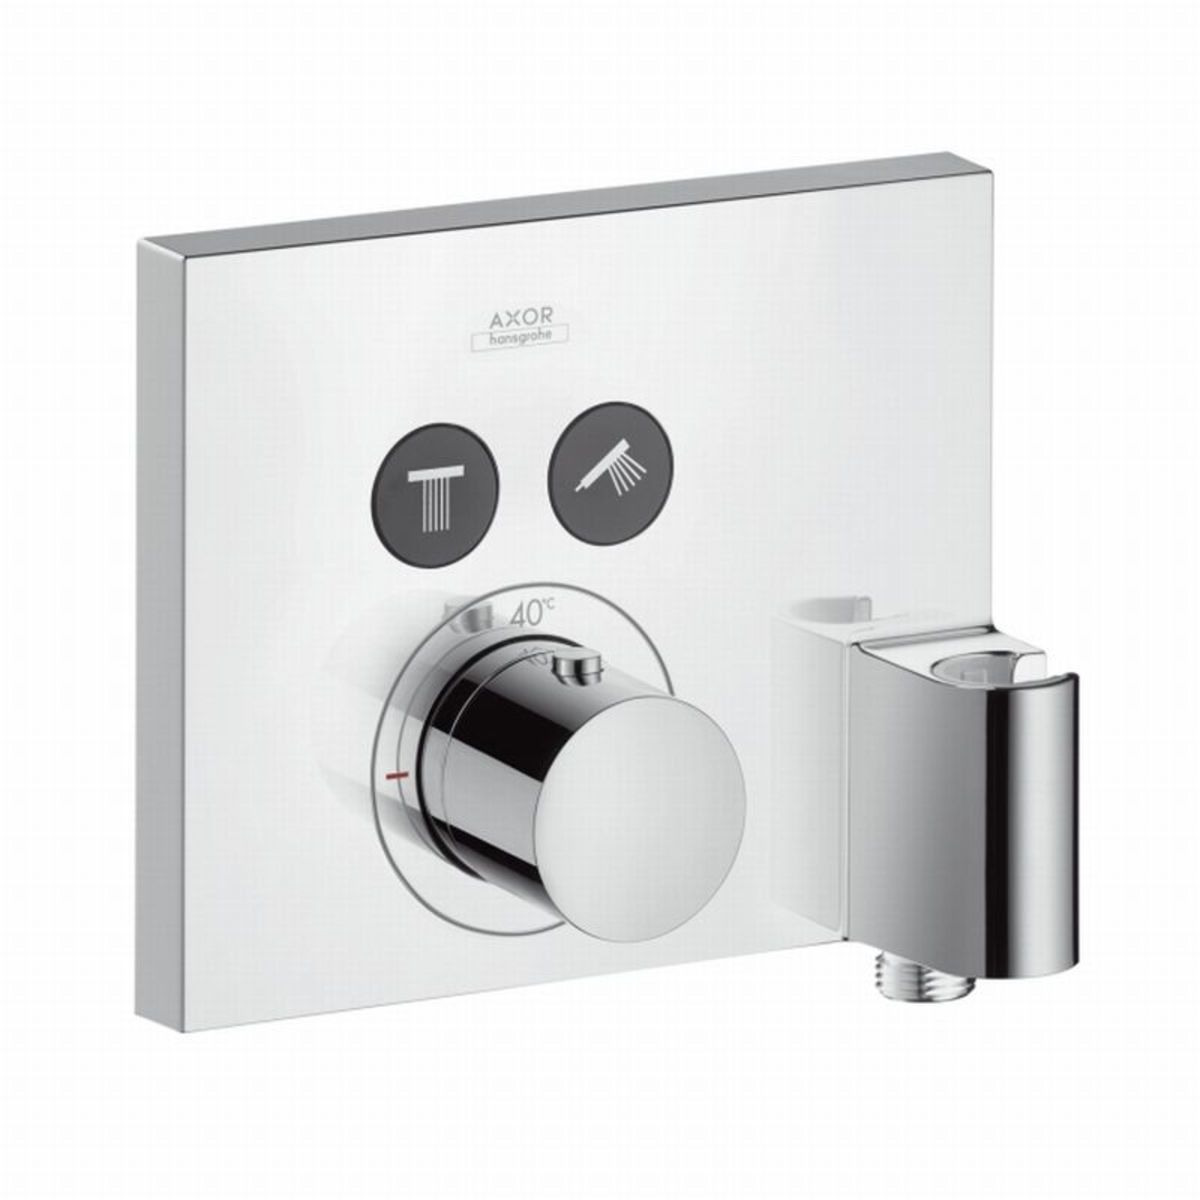 Mitigeur Thermostatique Pour Cabine De Douche Axor Showerselect Mitigeur Douche Thermostatique